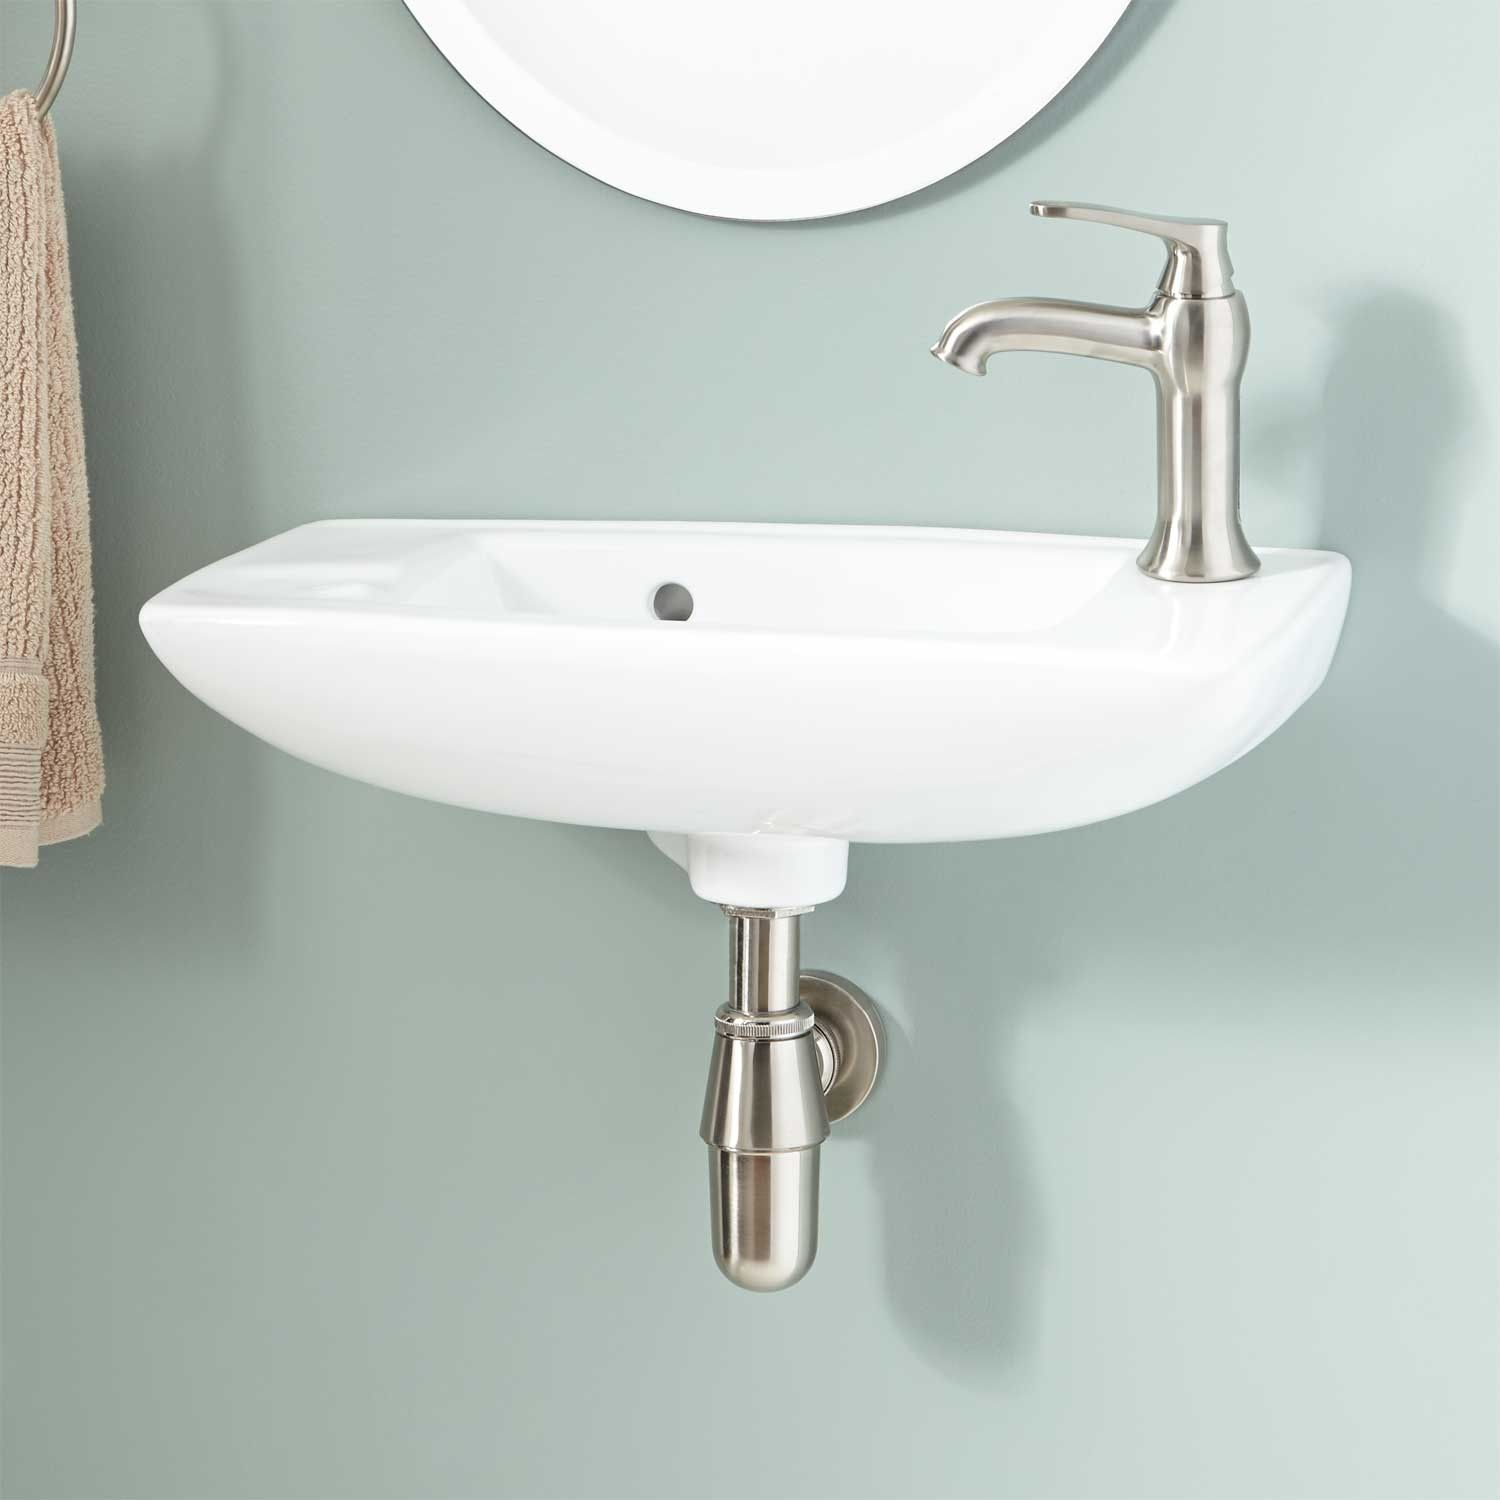 Lovely Belvidere Porcelain Wall Mount Bathroom Sink